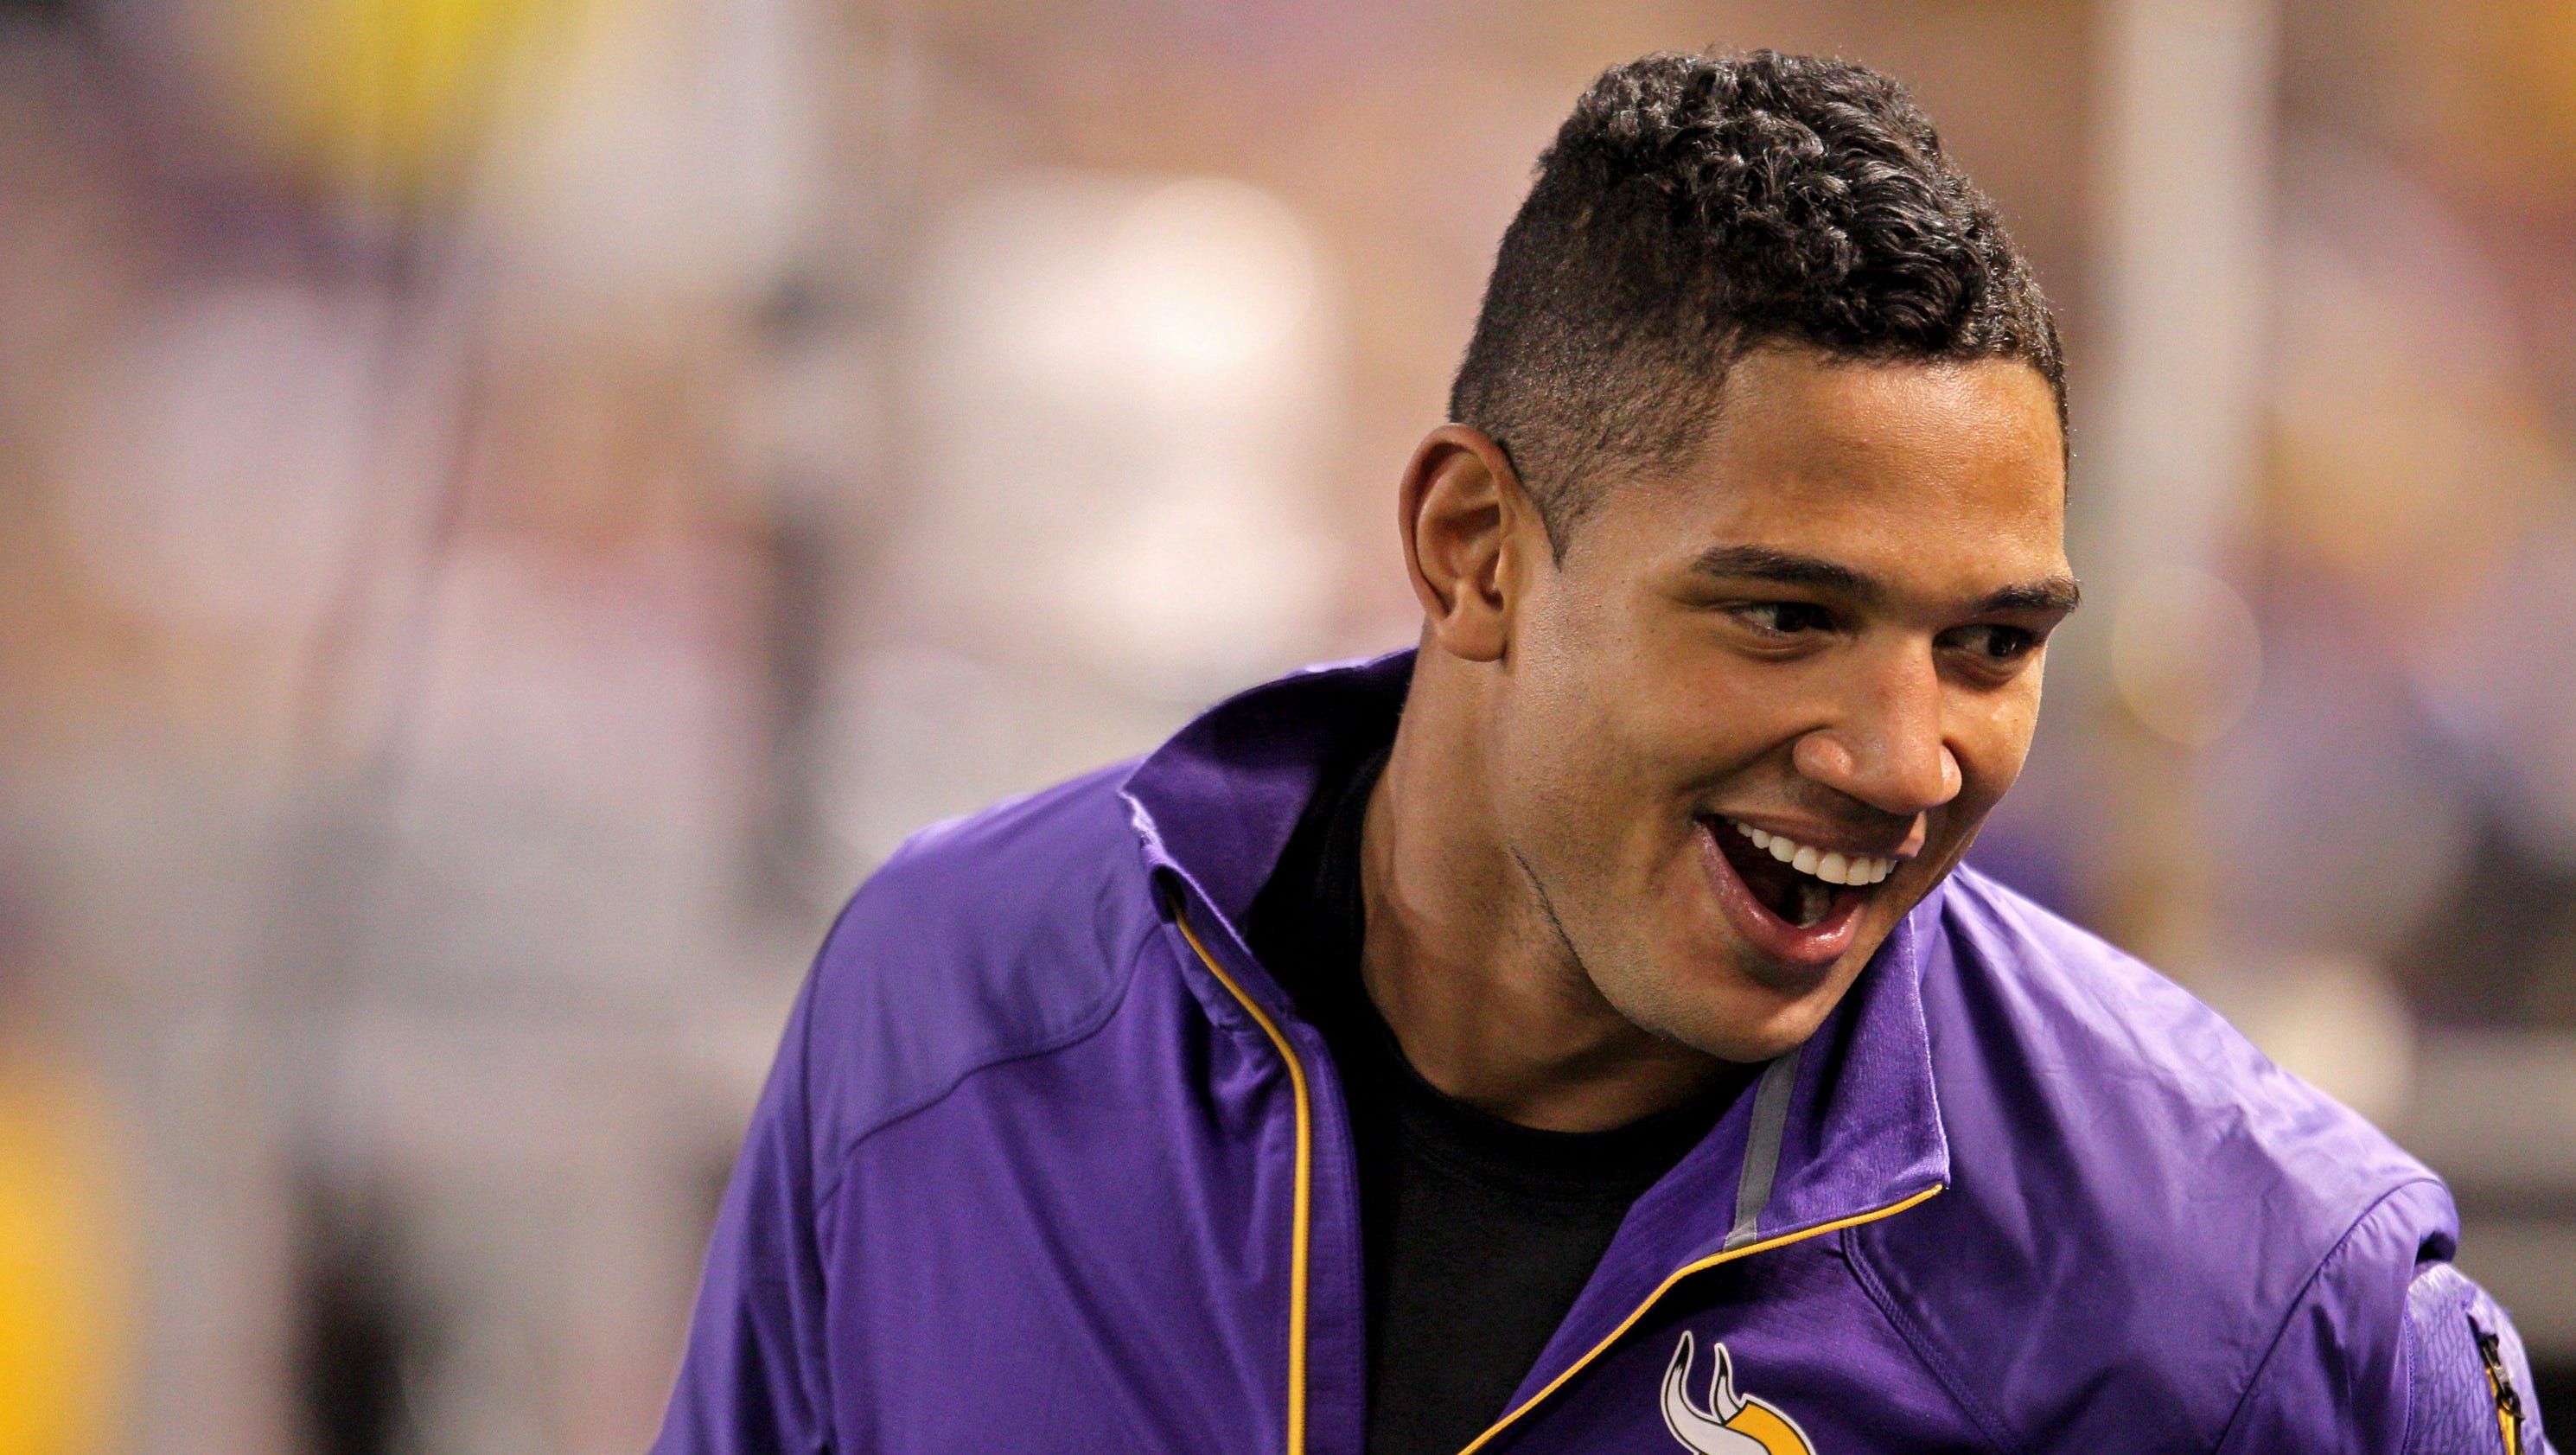 Green Bay Packers Roster >> Thursday NFL moves: Josh Freeman signs with Dolphins